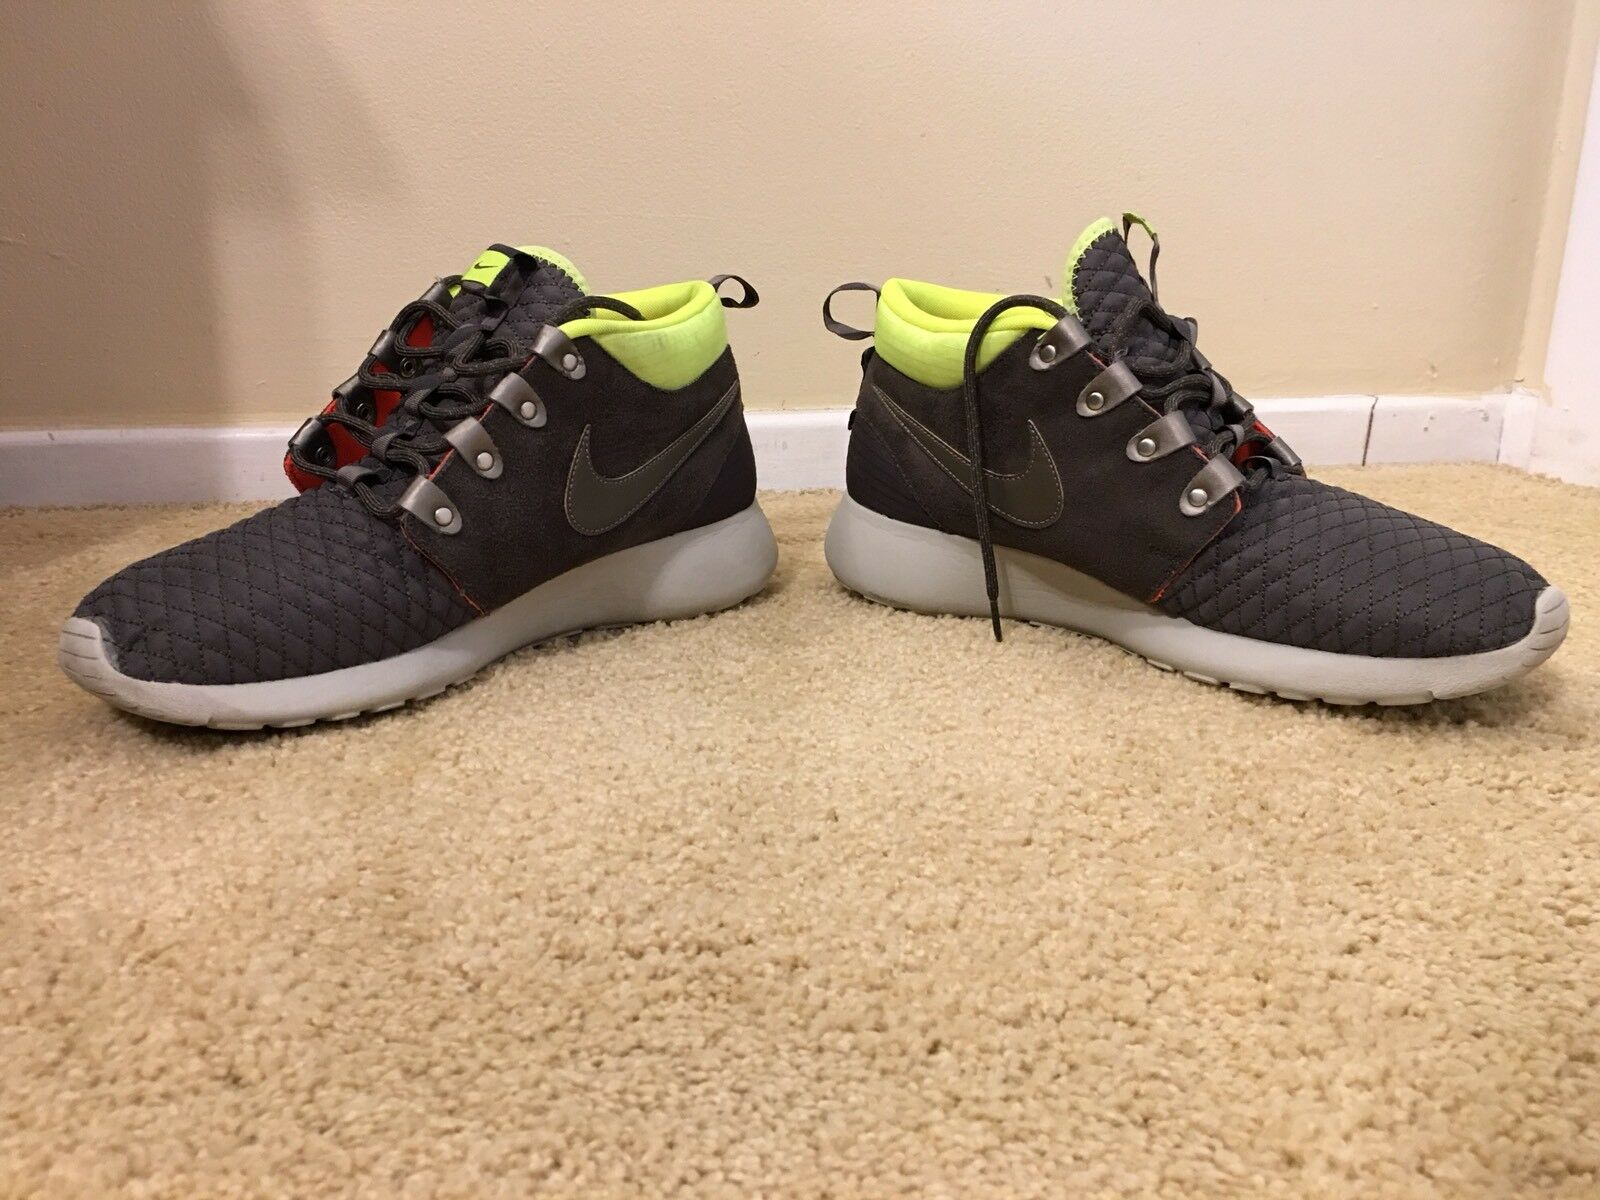 quality design 5227d ff8bc Nike Roshe Run One Mid Winter Sneakerboot Shoes Mens 11 Newsprint 615601  007 for sale online   eBay